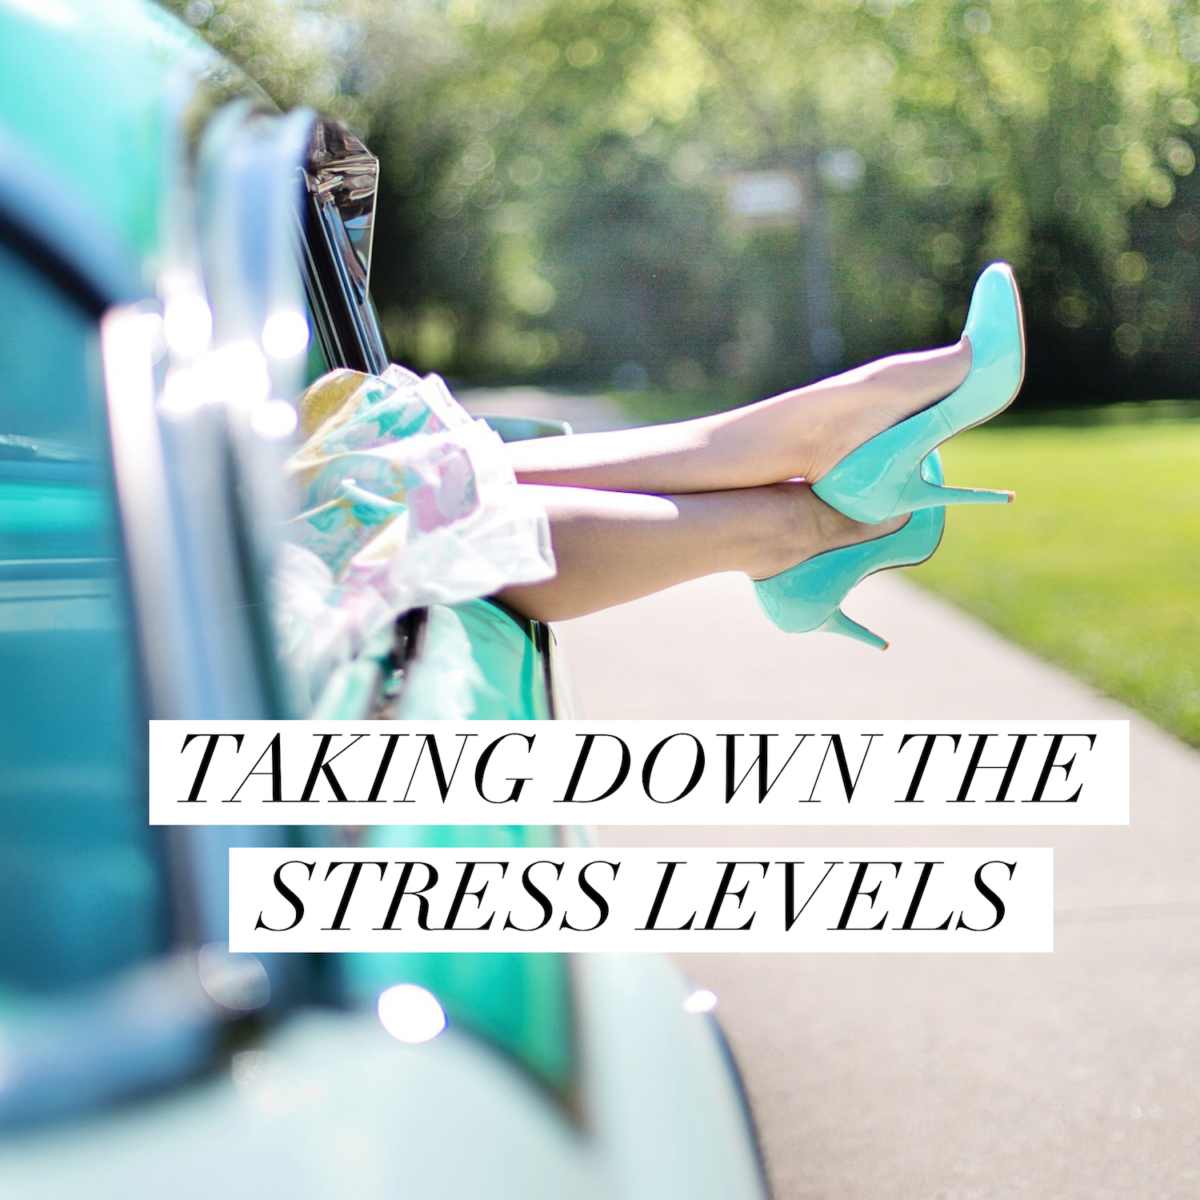 5 ways to lower stress levels